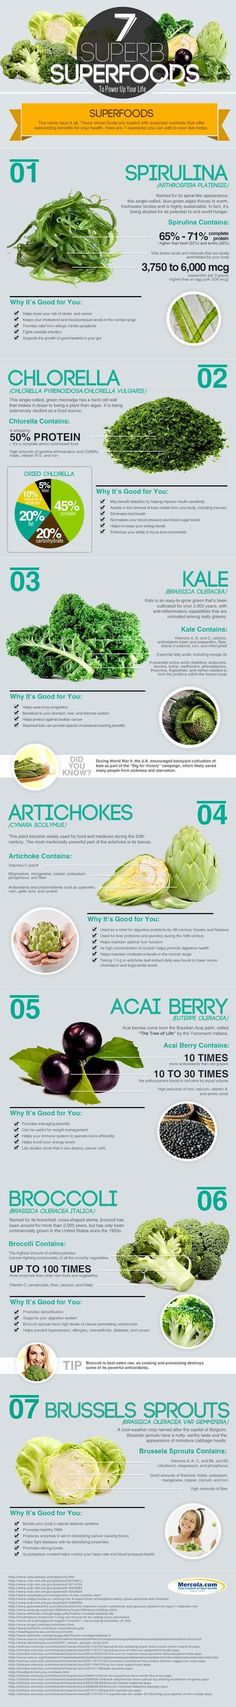 7 superfoods for good health!